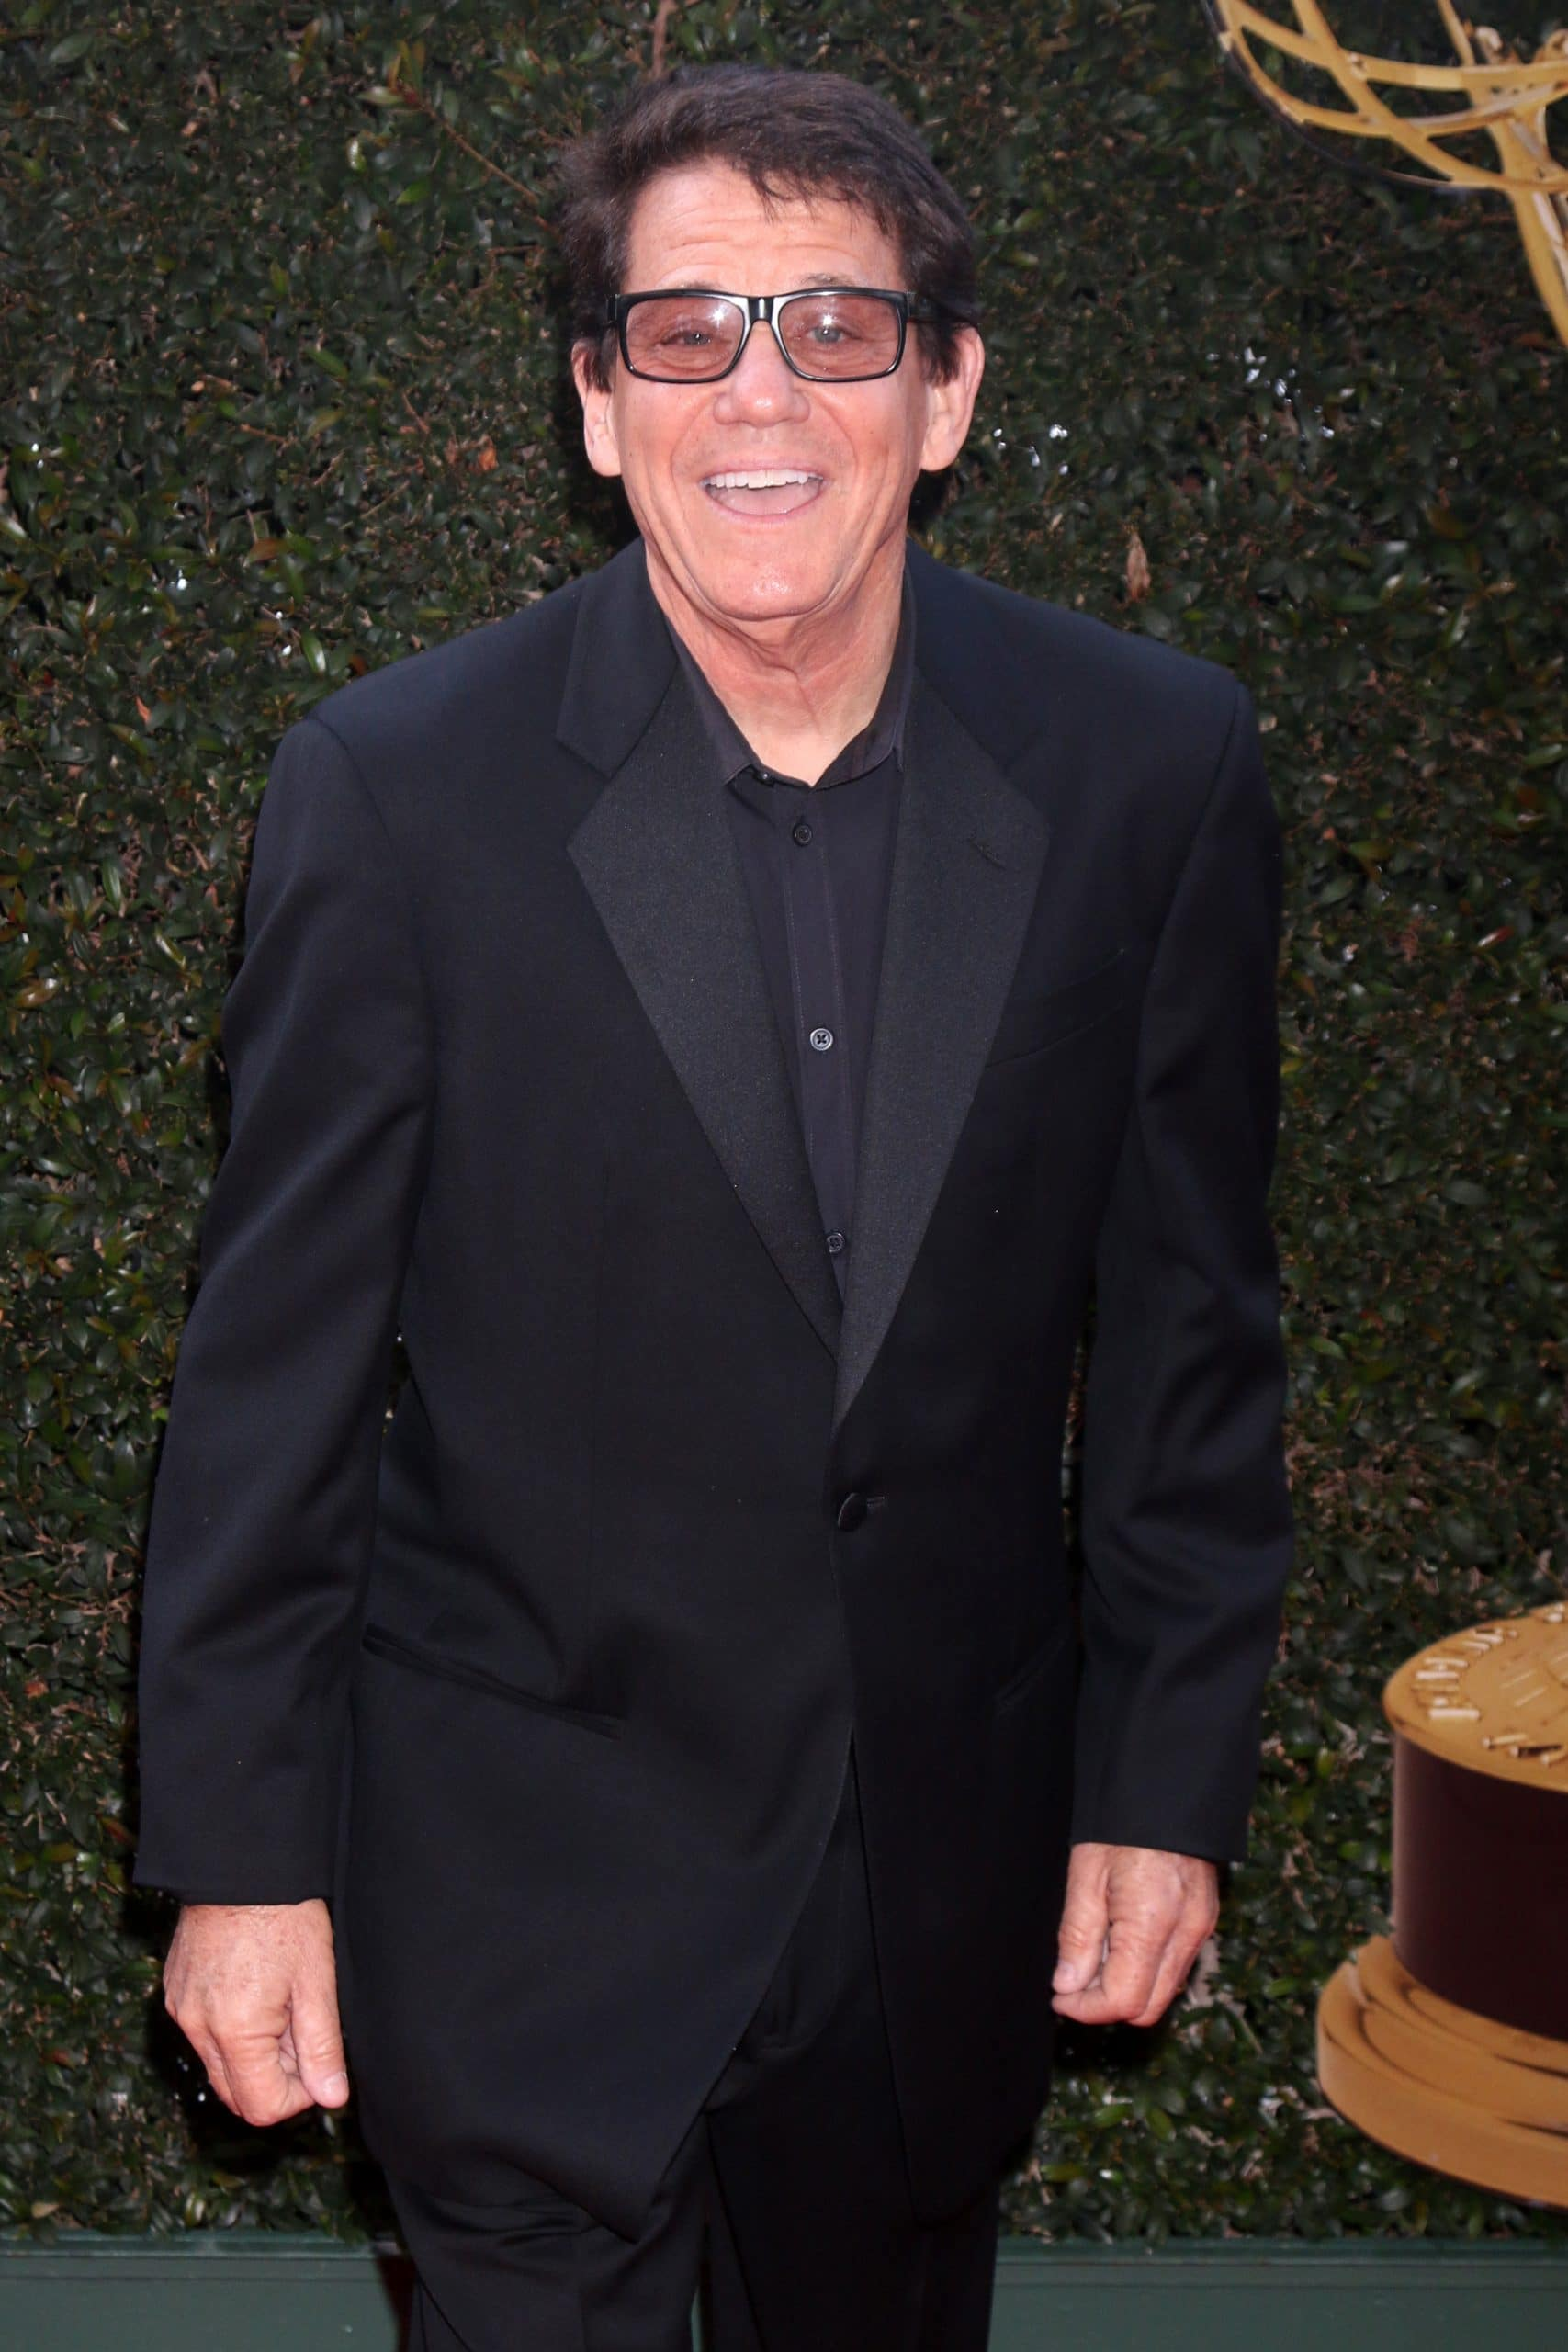 Anson Williams Claims His 'Stay Awake Spray' Could've Helped Tiger Woods